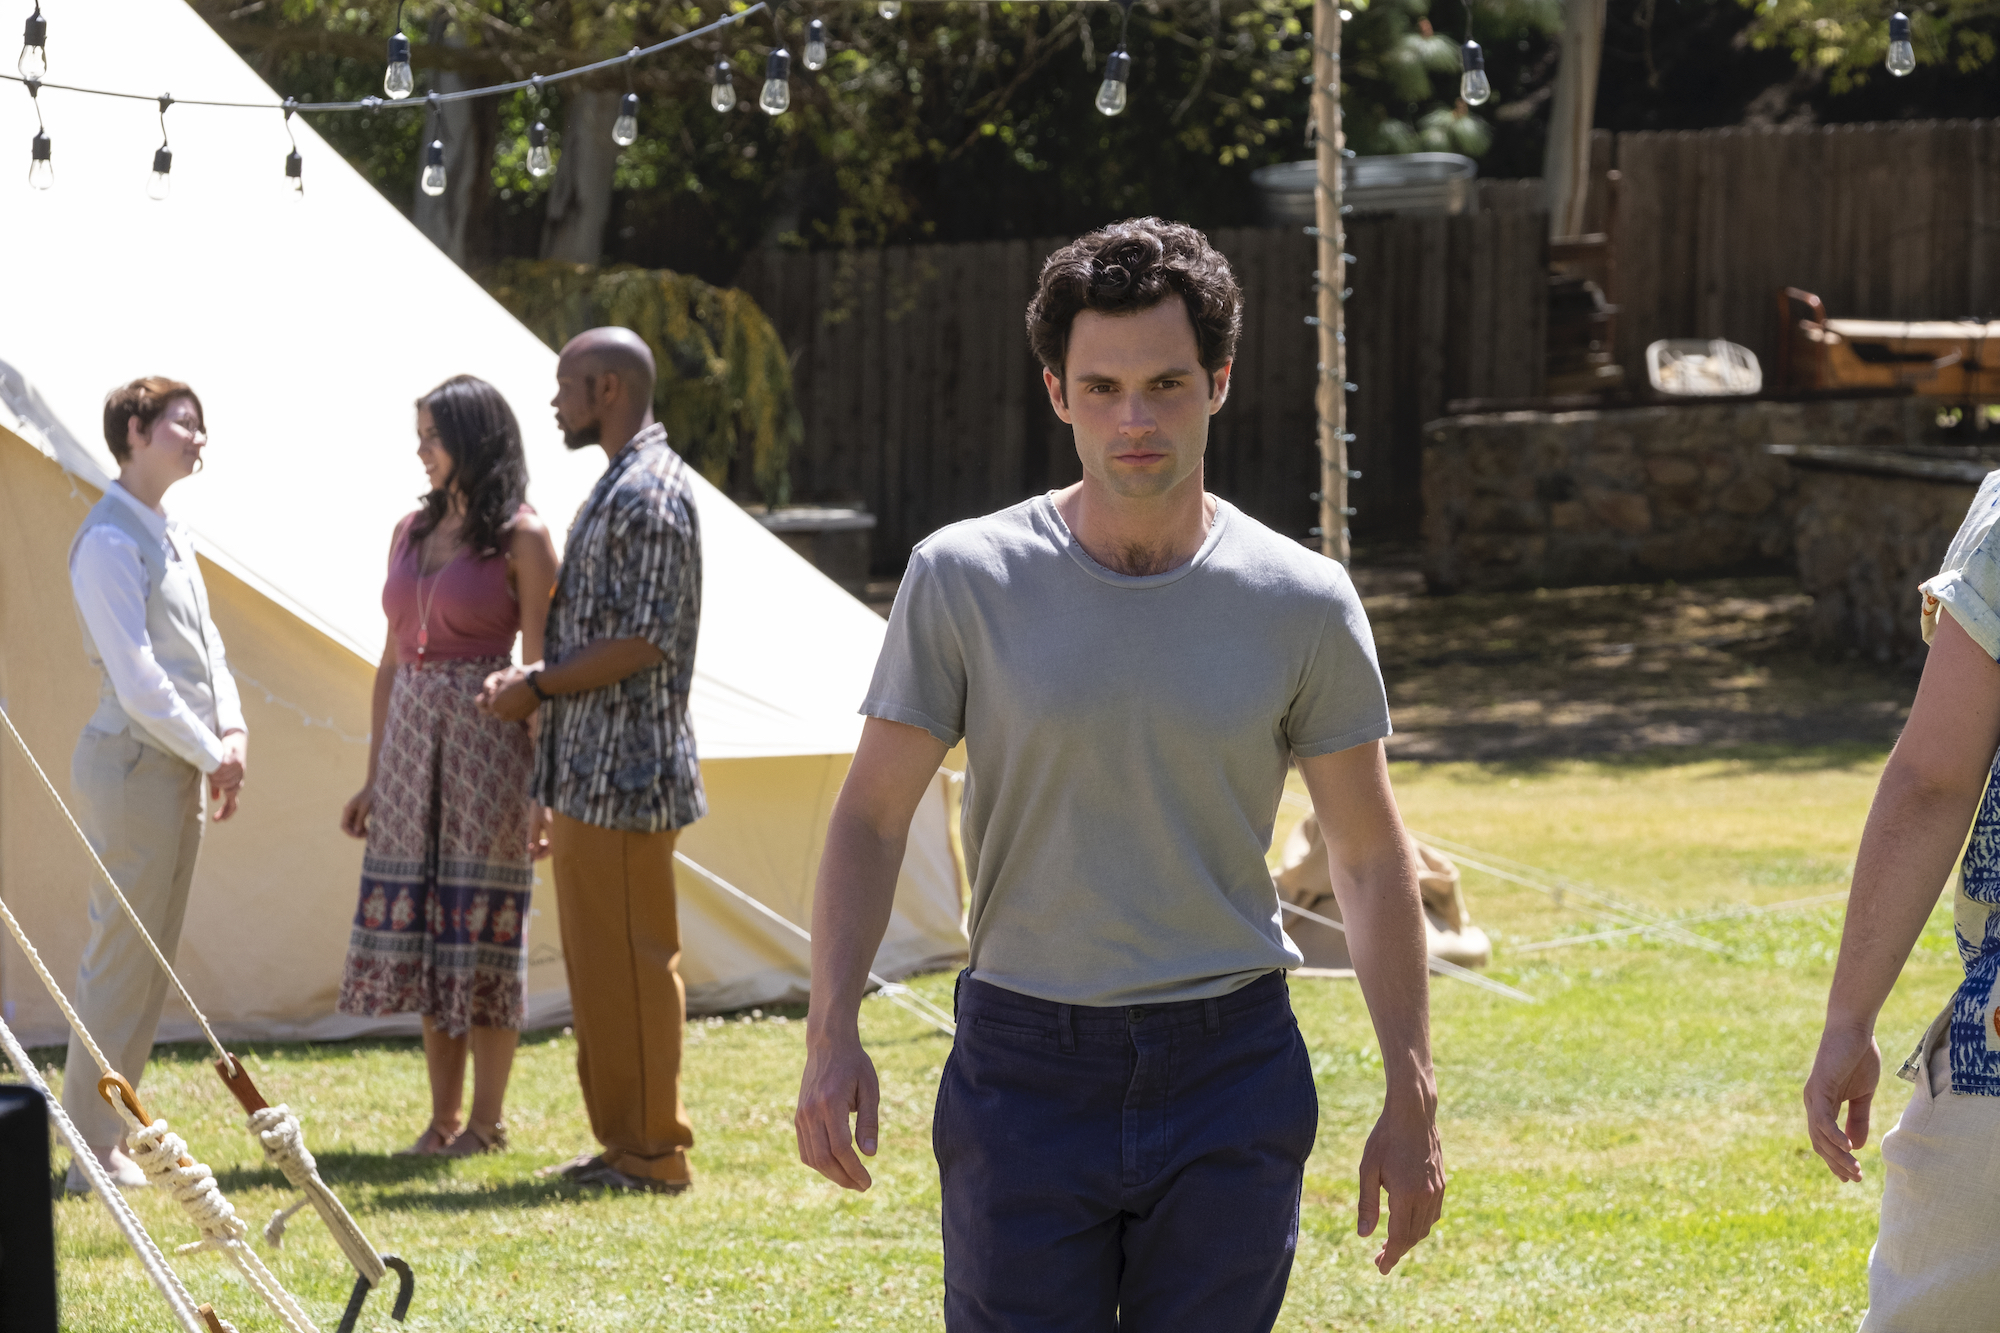 Penn Badgley as Joe on You felt conflicted to play such a horrible character.